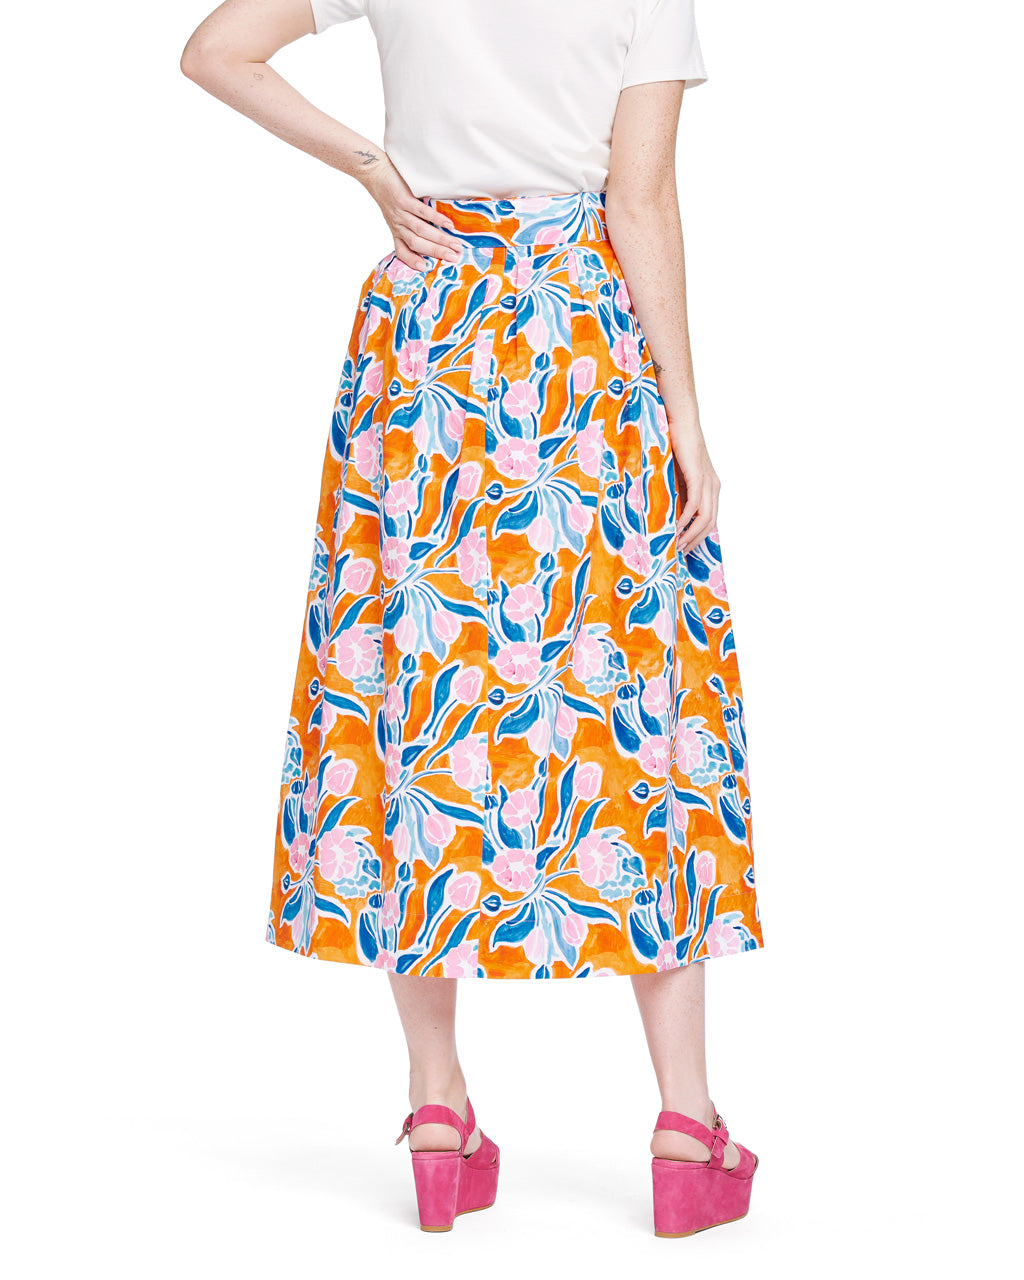 Vinita Pleated Full Skirt - Orange Floral